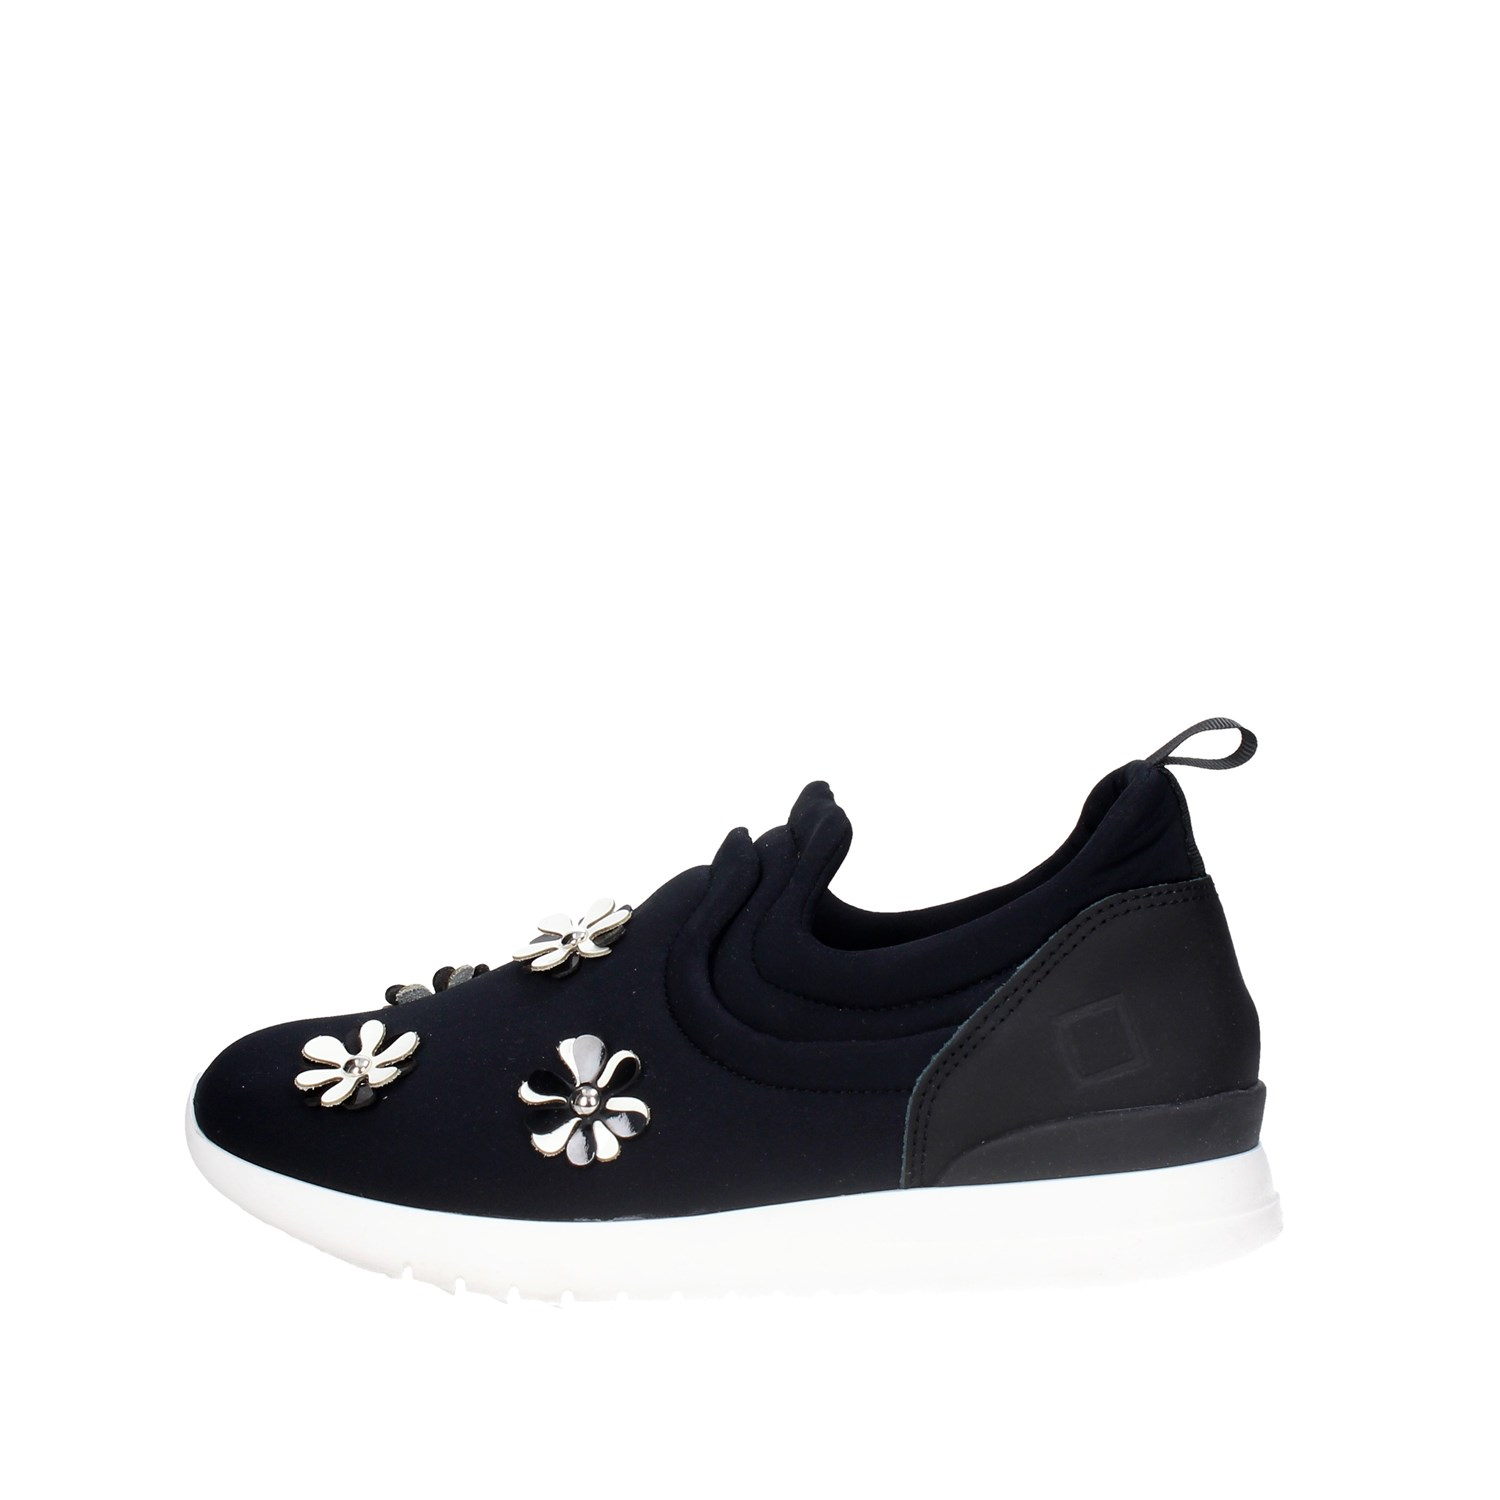 D.a.t.e. Primavera/Estate SLIP ON-34 NERO Slip-on   Primavera/Estate D.a.t.e. d7ad13